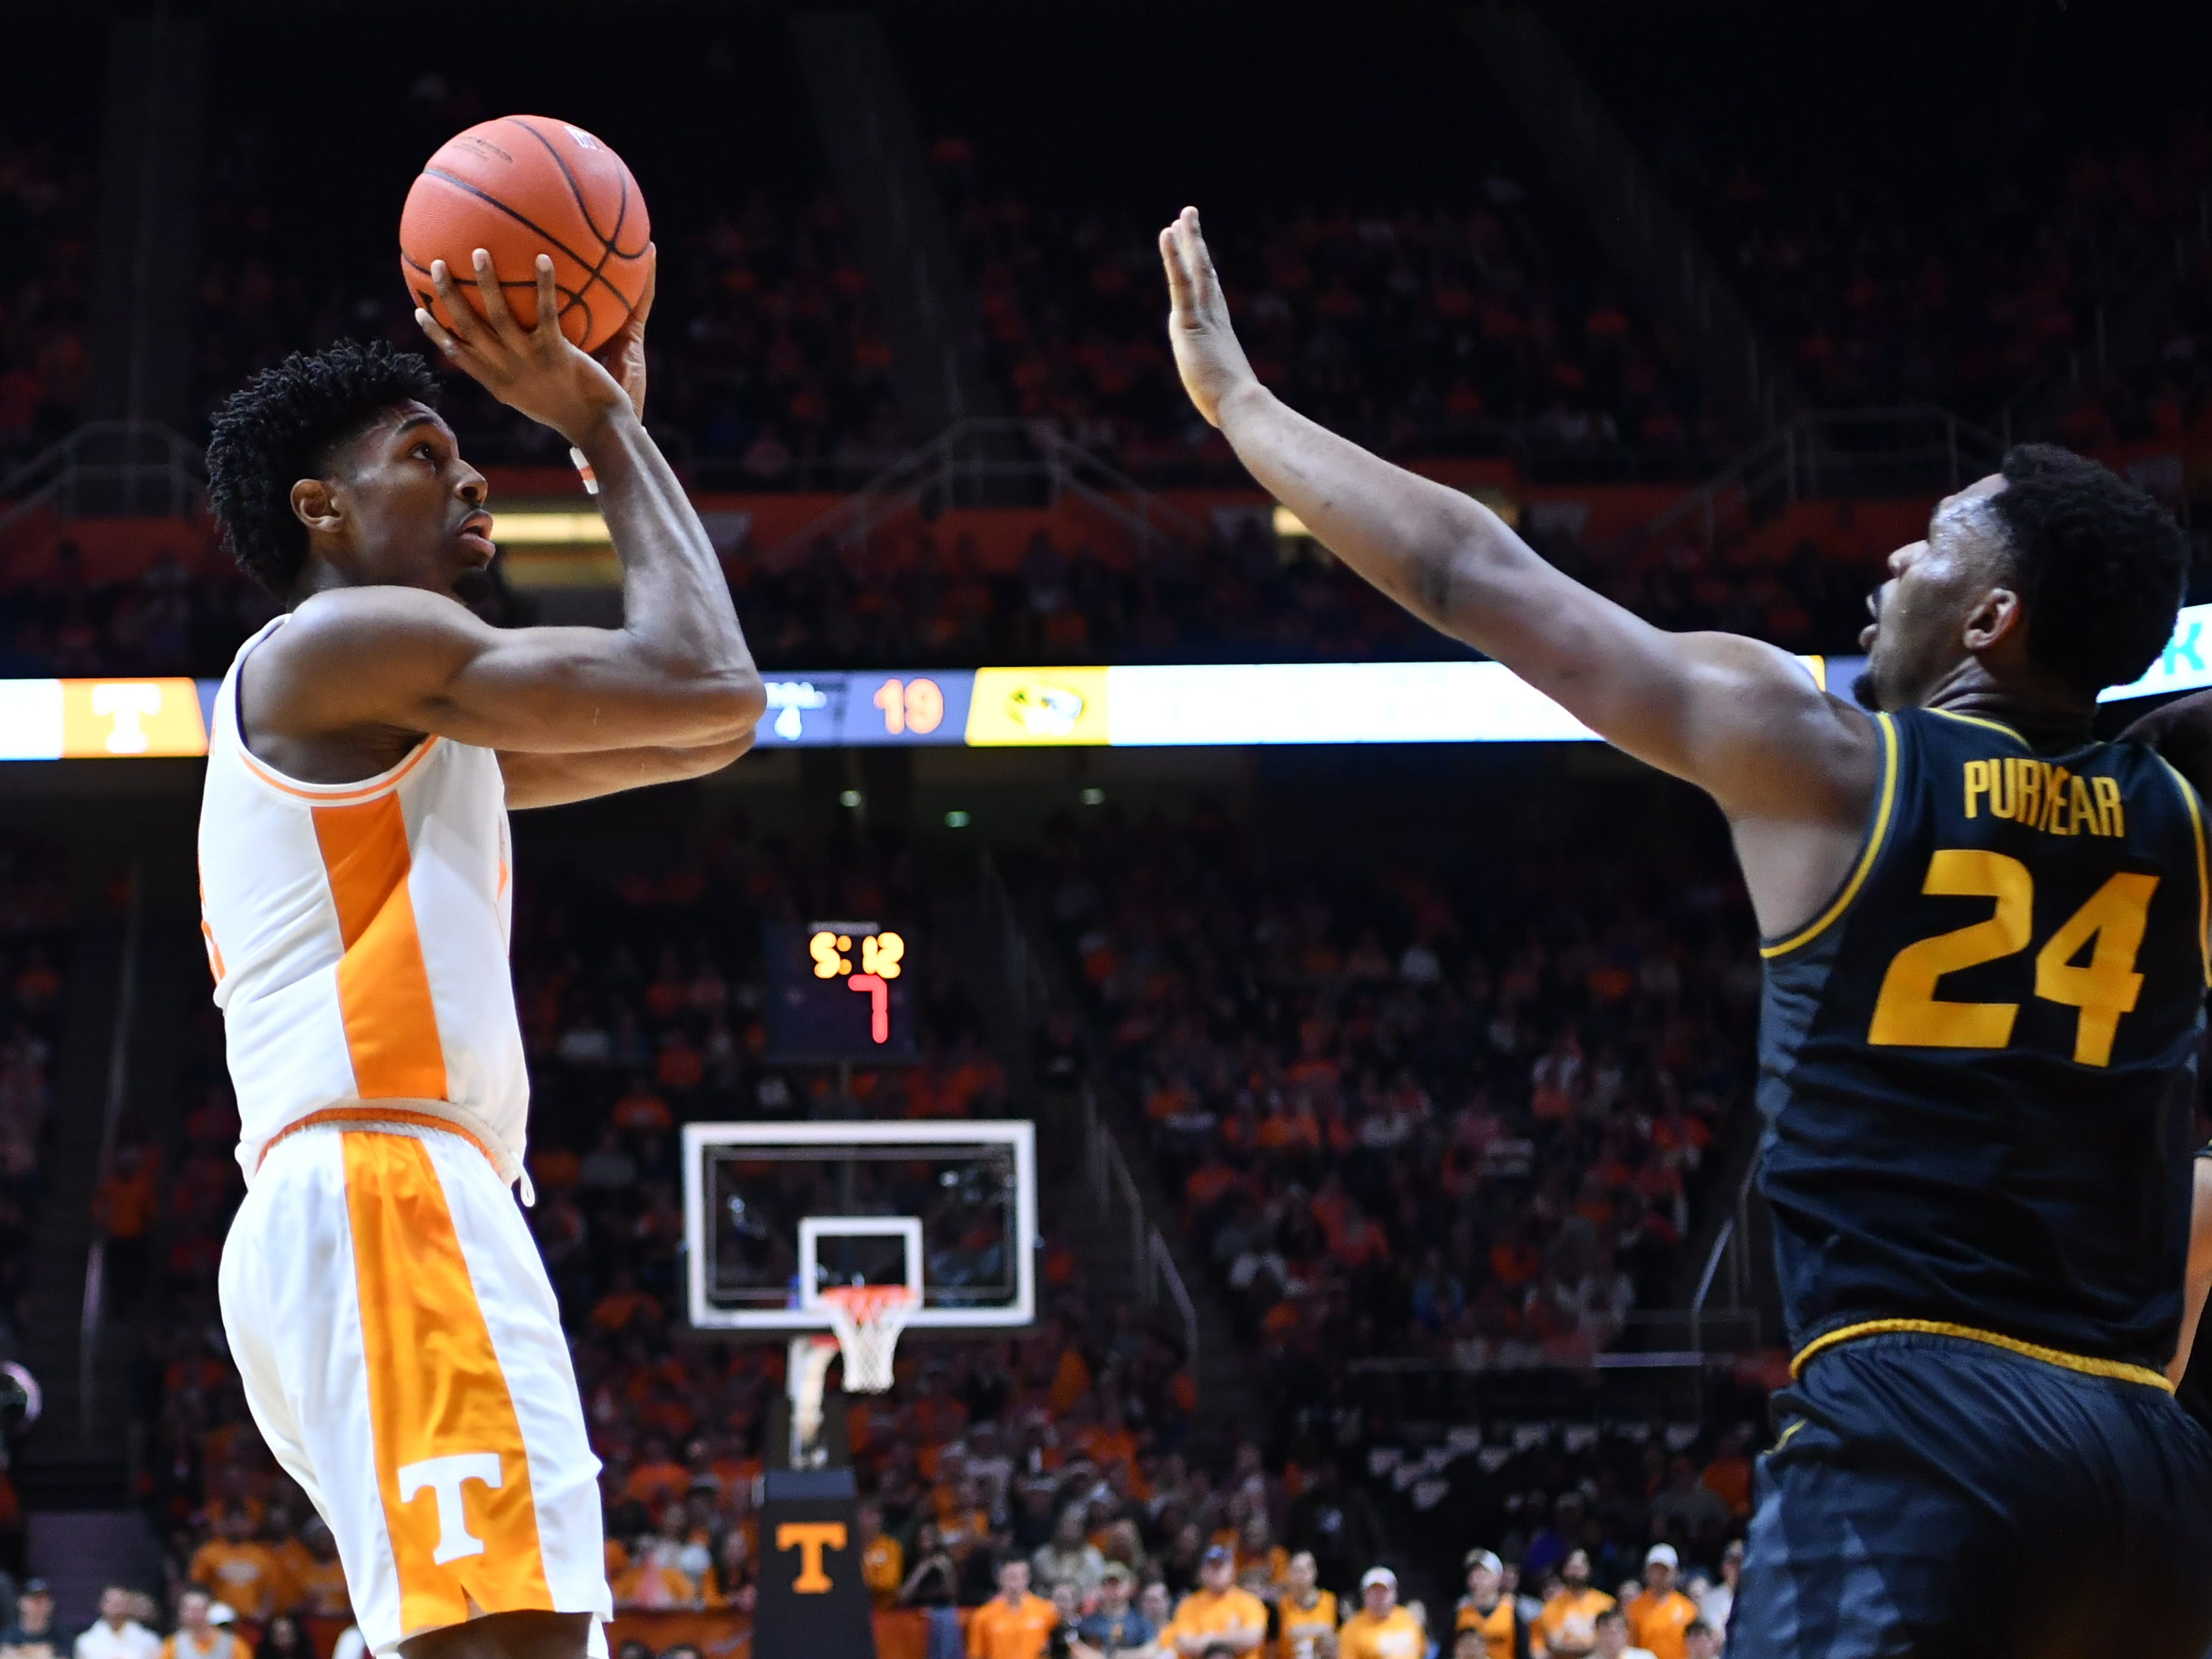 Tennessee's Kyle Alexander (11) takes a shot while guarded by Missouri's Kevin Puryear (24) on Tuesday, February 5, 2019.